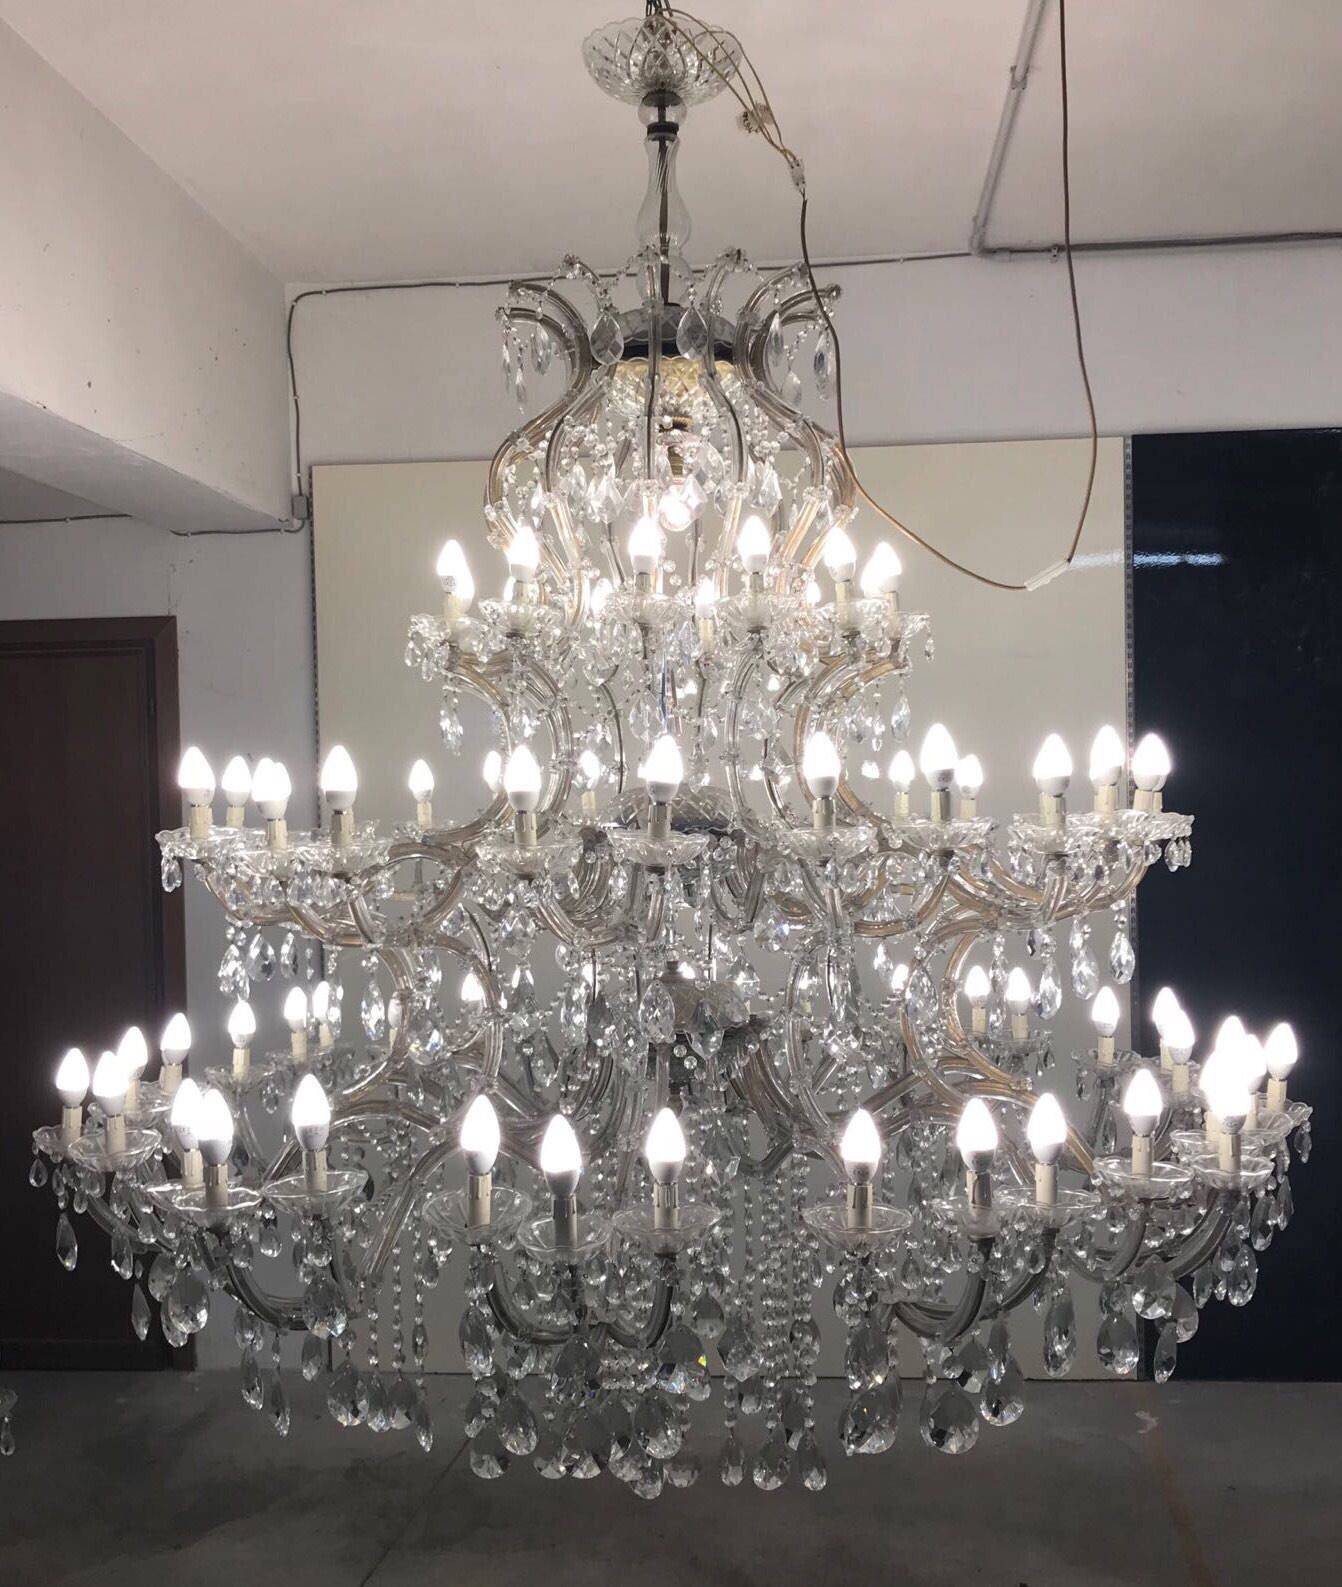 magnifying inch elegant image finish item belenus chandelier crystal pendant chrome chandeliers cfm light shown large glass wide lighting in